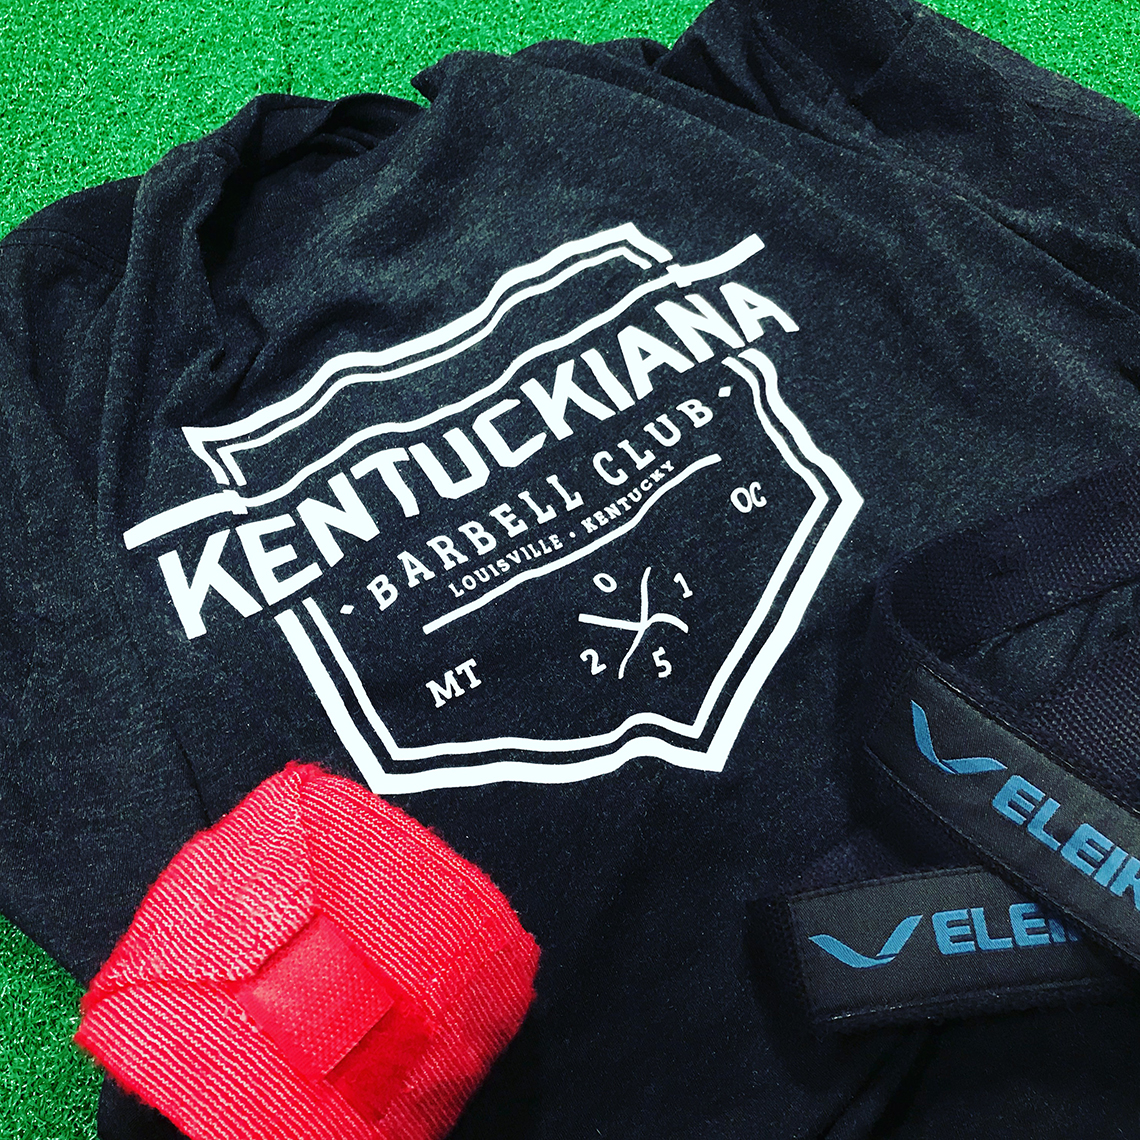 Kentuckiana Barbell Club Logo